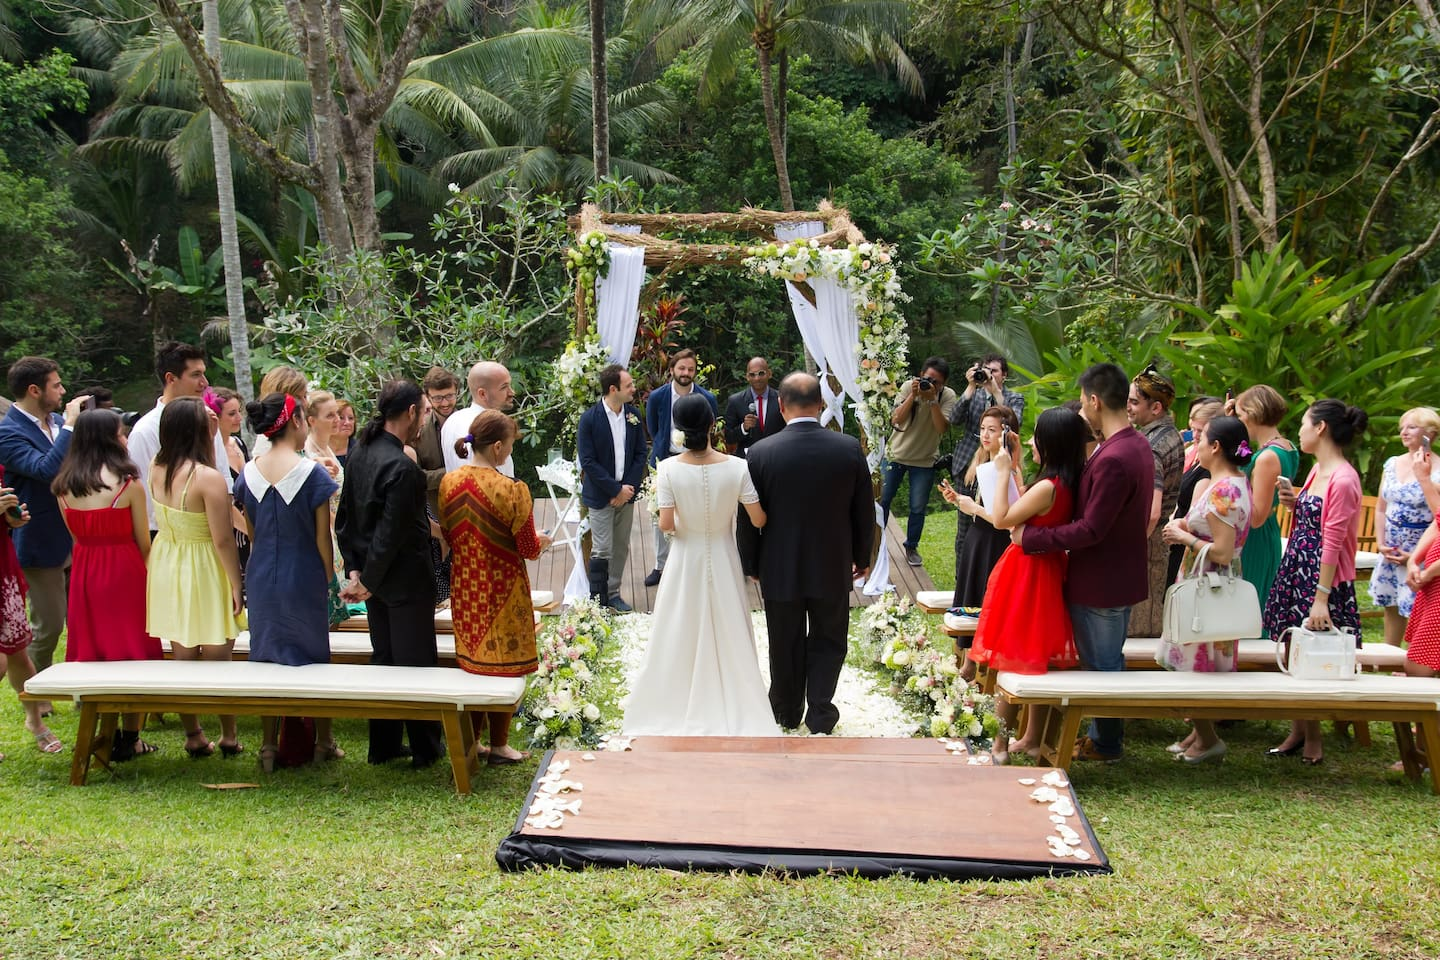 Private villa for weddings events villas for rent in ubud bali stunning location for a romantic intimate wedding junglespirit Gallery